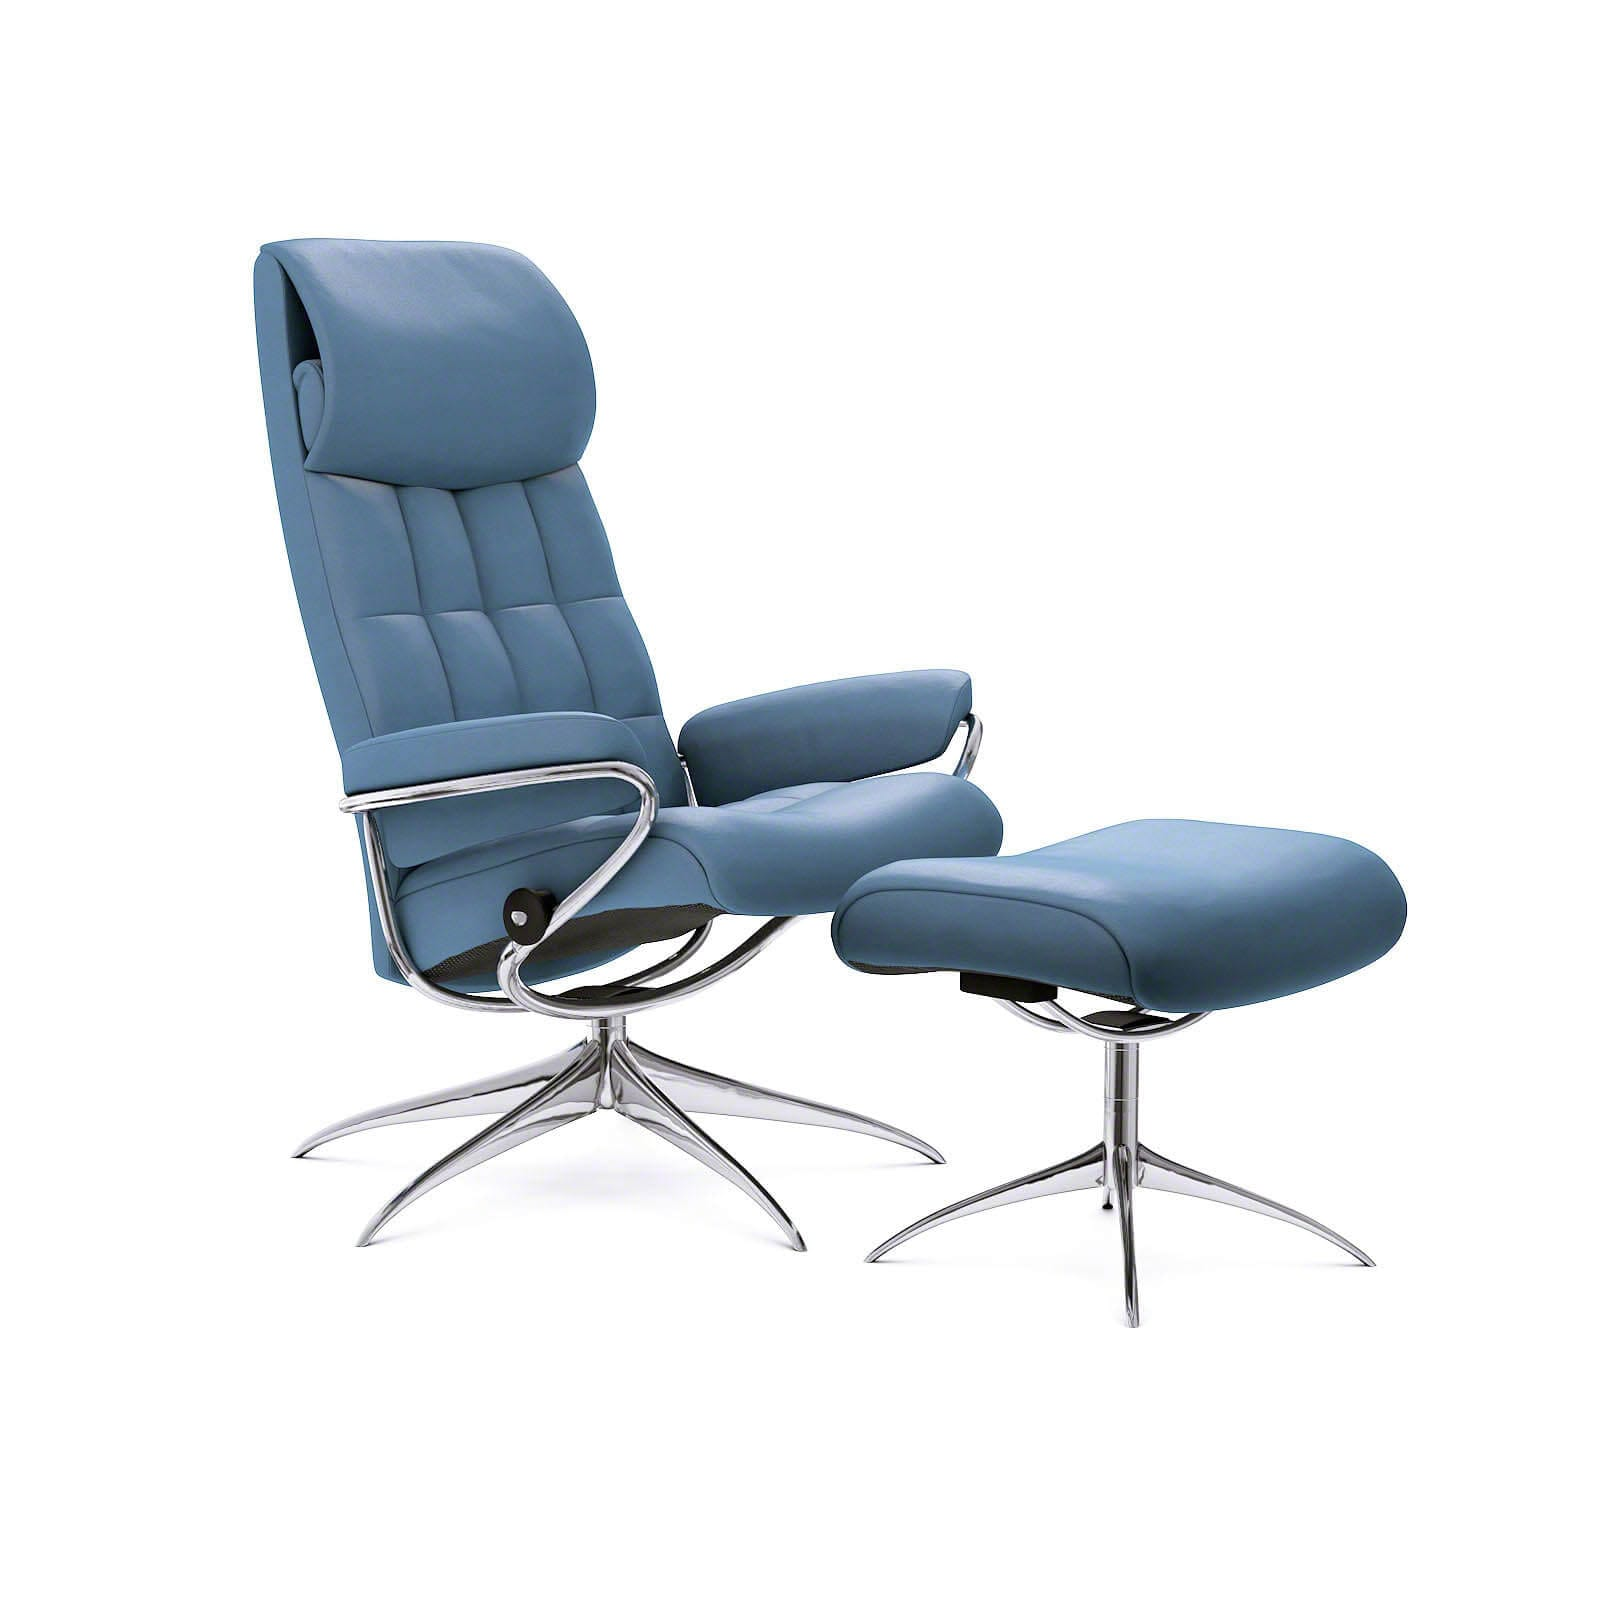 Stressless Sessel City Stressless London Sessel Mit Hoher Lehne Paloma Sparrow Blue